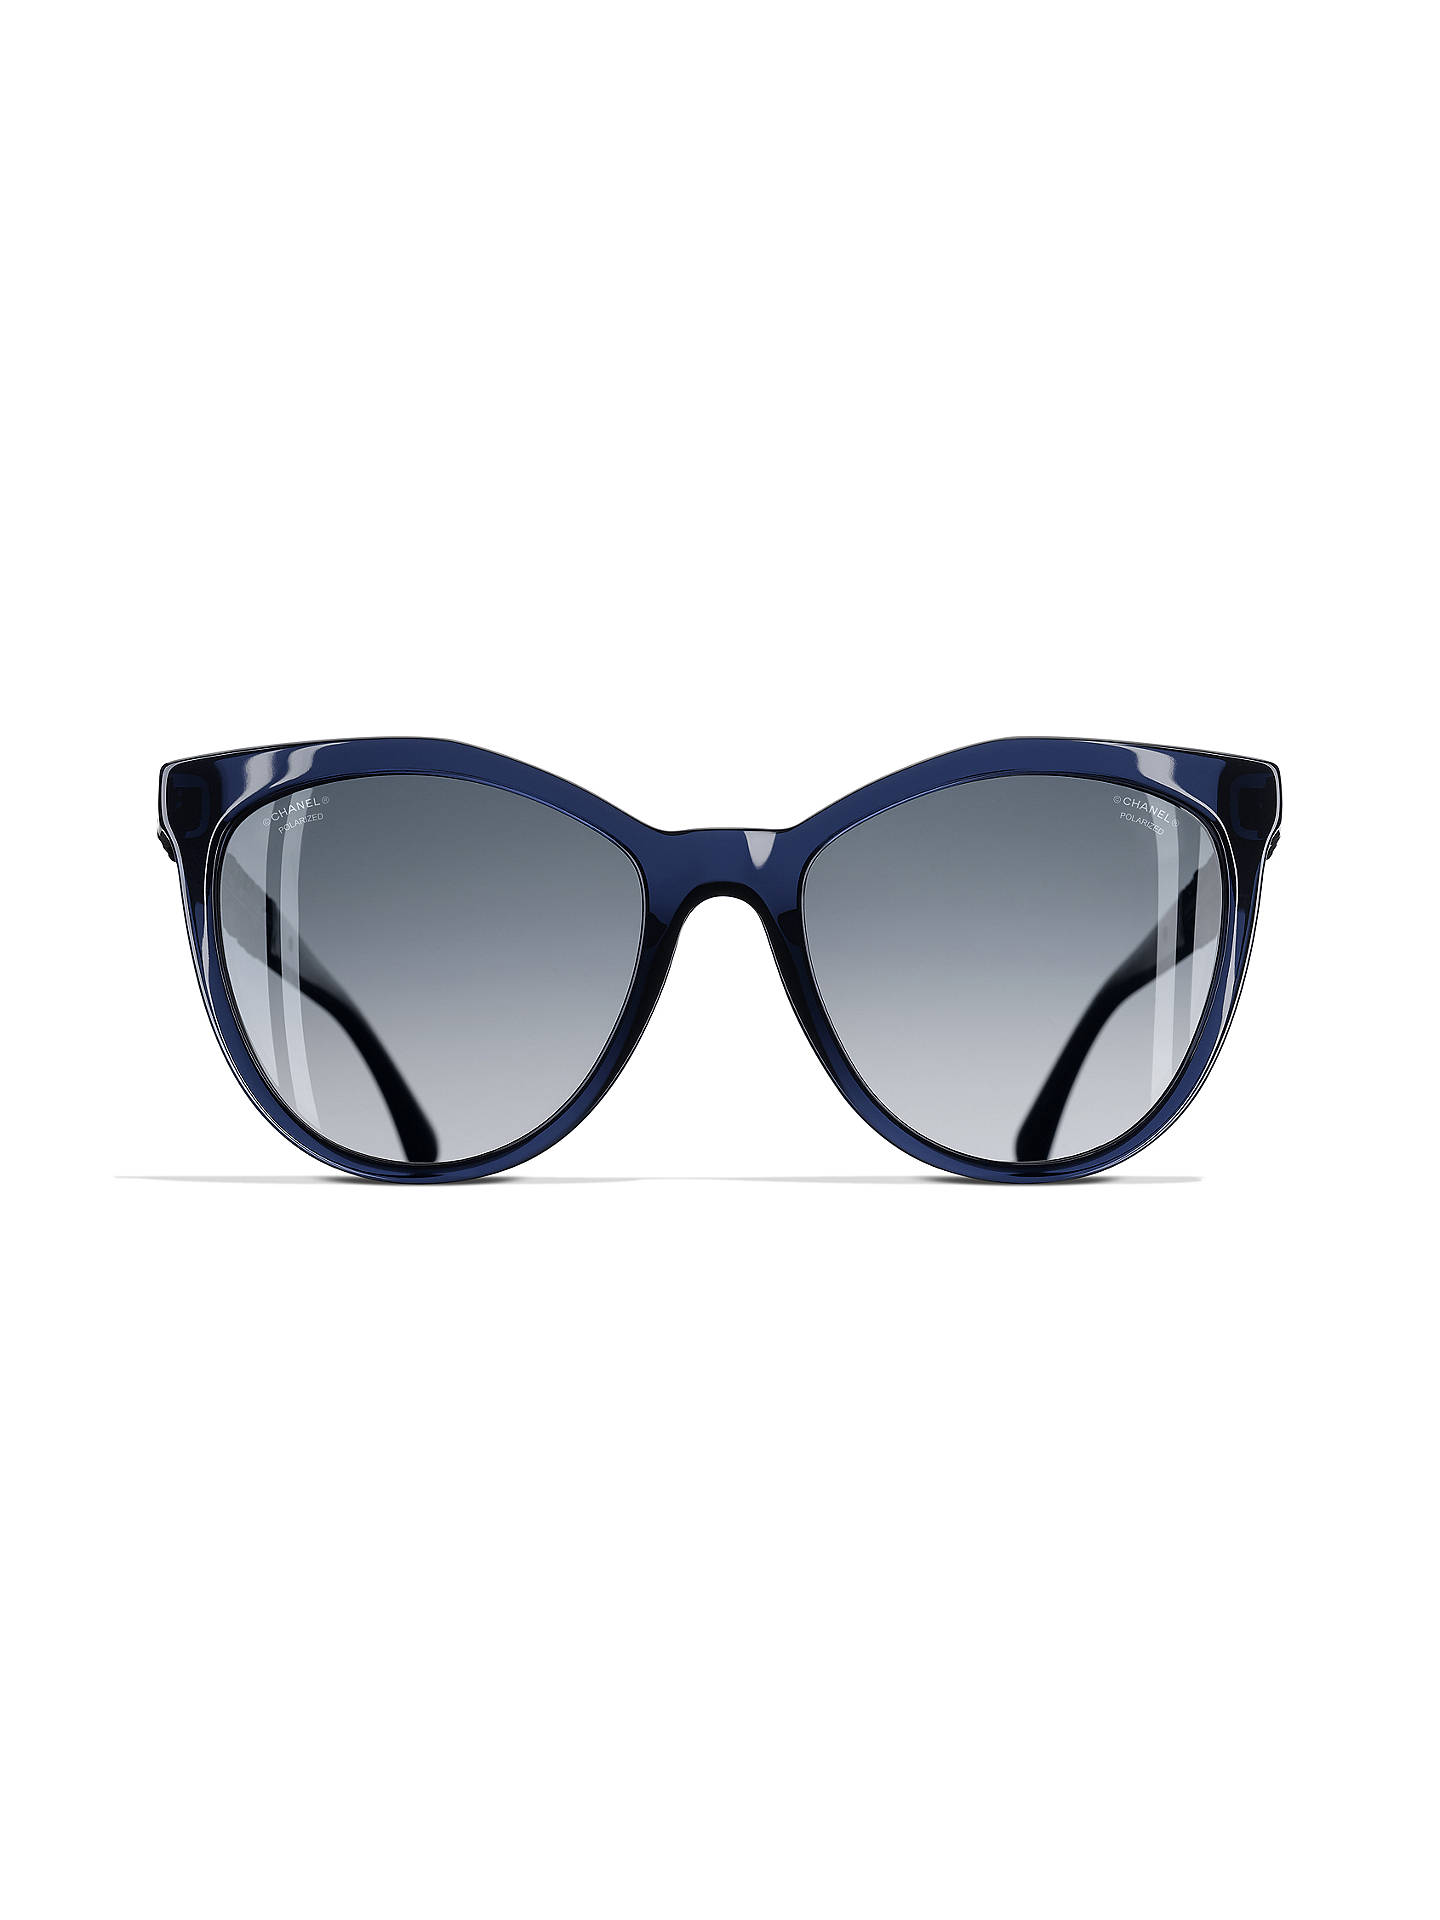 89abe589d1 ... Buy CHANEL Polarised Butterfly Sunglasses CH5376B Dark Blue Online at  johnlewis.com ...